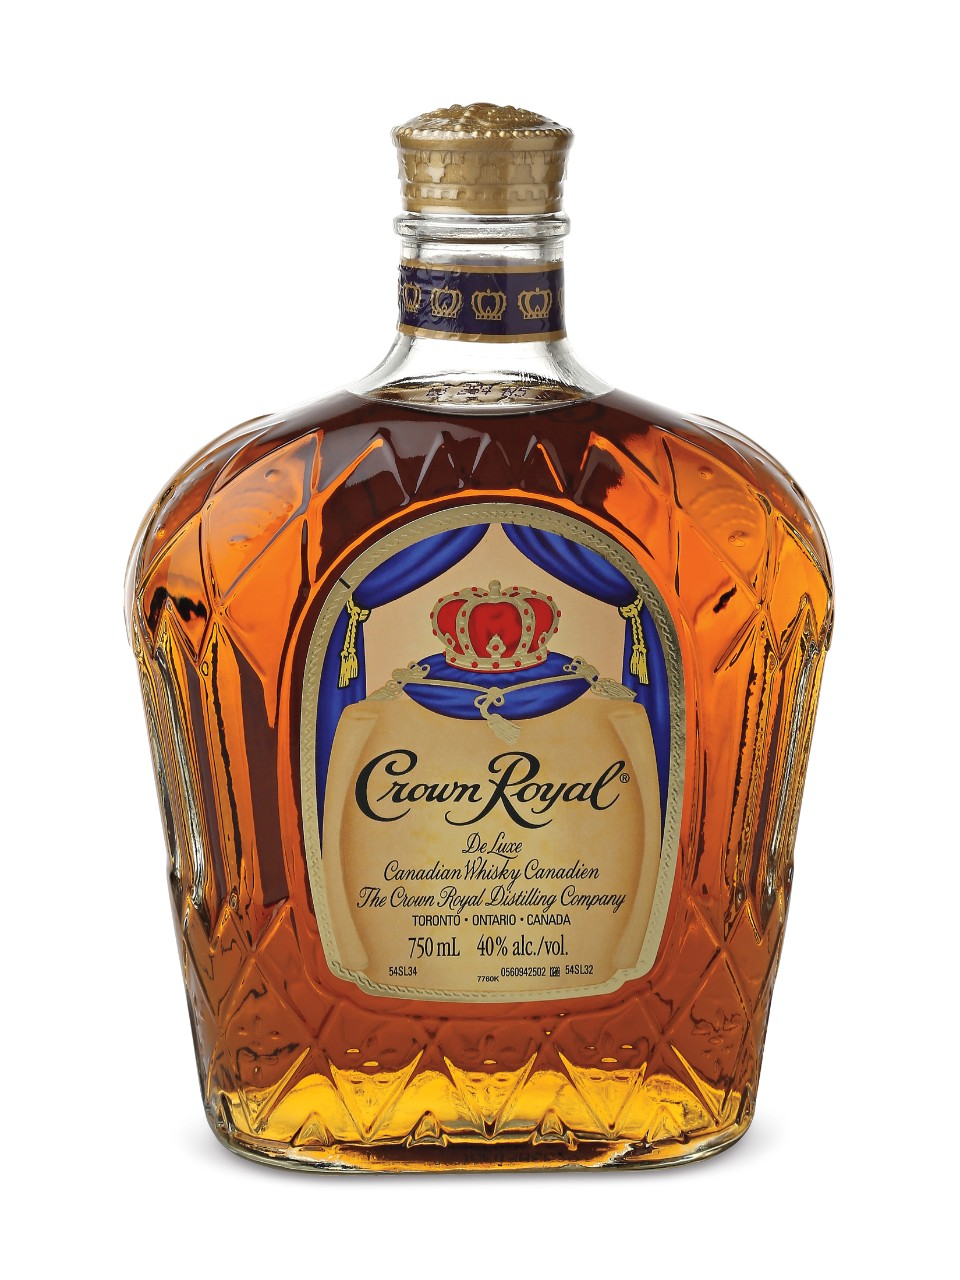 Israel Wine Delivery (W14) whiskey crown royal